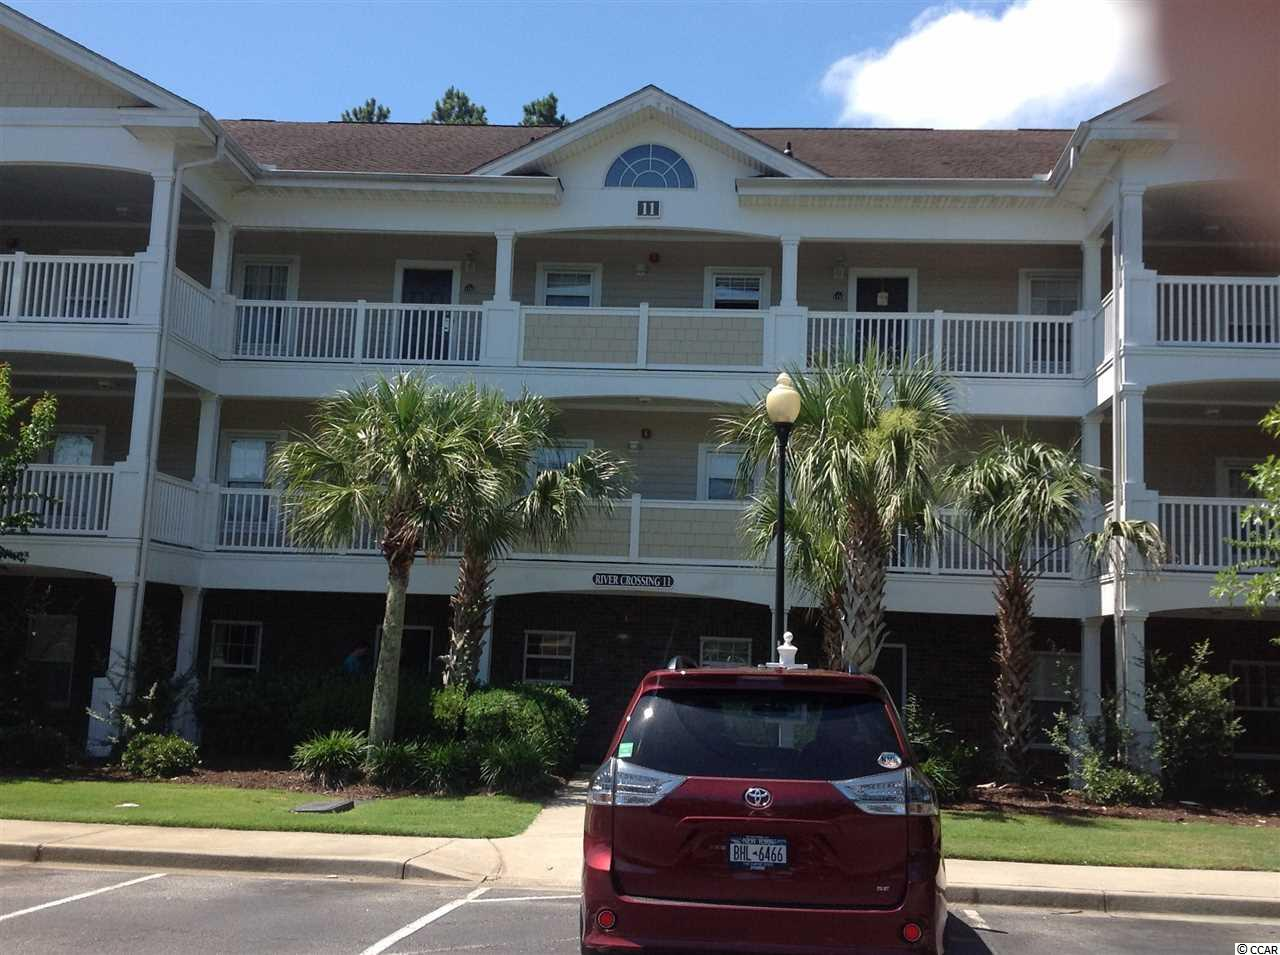 Bright and airy 2 bedroom, 2 bathroom unit features an open floor plan with a spacious kitchen area. This unit has been exceptionally cared for by the owners and it shows it. The community swimming pool is just steps away from this rare 1st floor unit. Enjoy your membership to the Barefoot Resort Beach Cabana that offers gated parking and private beach access or take the shuttle service there if you do not want to drive to the beach. If you enjoy golf you will have 4 championship golf courses at your disposal and lets not forget the 15,000 square foot salt water swimming pool directly on the Intracoastal Waterway for your enjoyment. Air handler/condensing unit was just replaced in 2015. Come and enjoy all that this destination resort has to give , Come enjoy the BAREFOOT life style. Measurements are approximate and not guaranteed, buyer is responsible for verification.